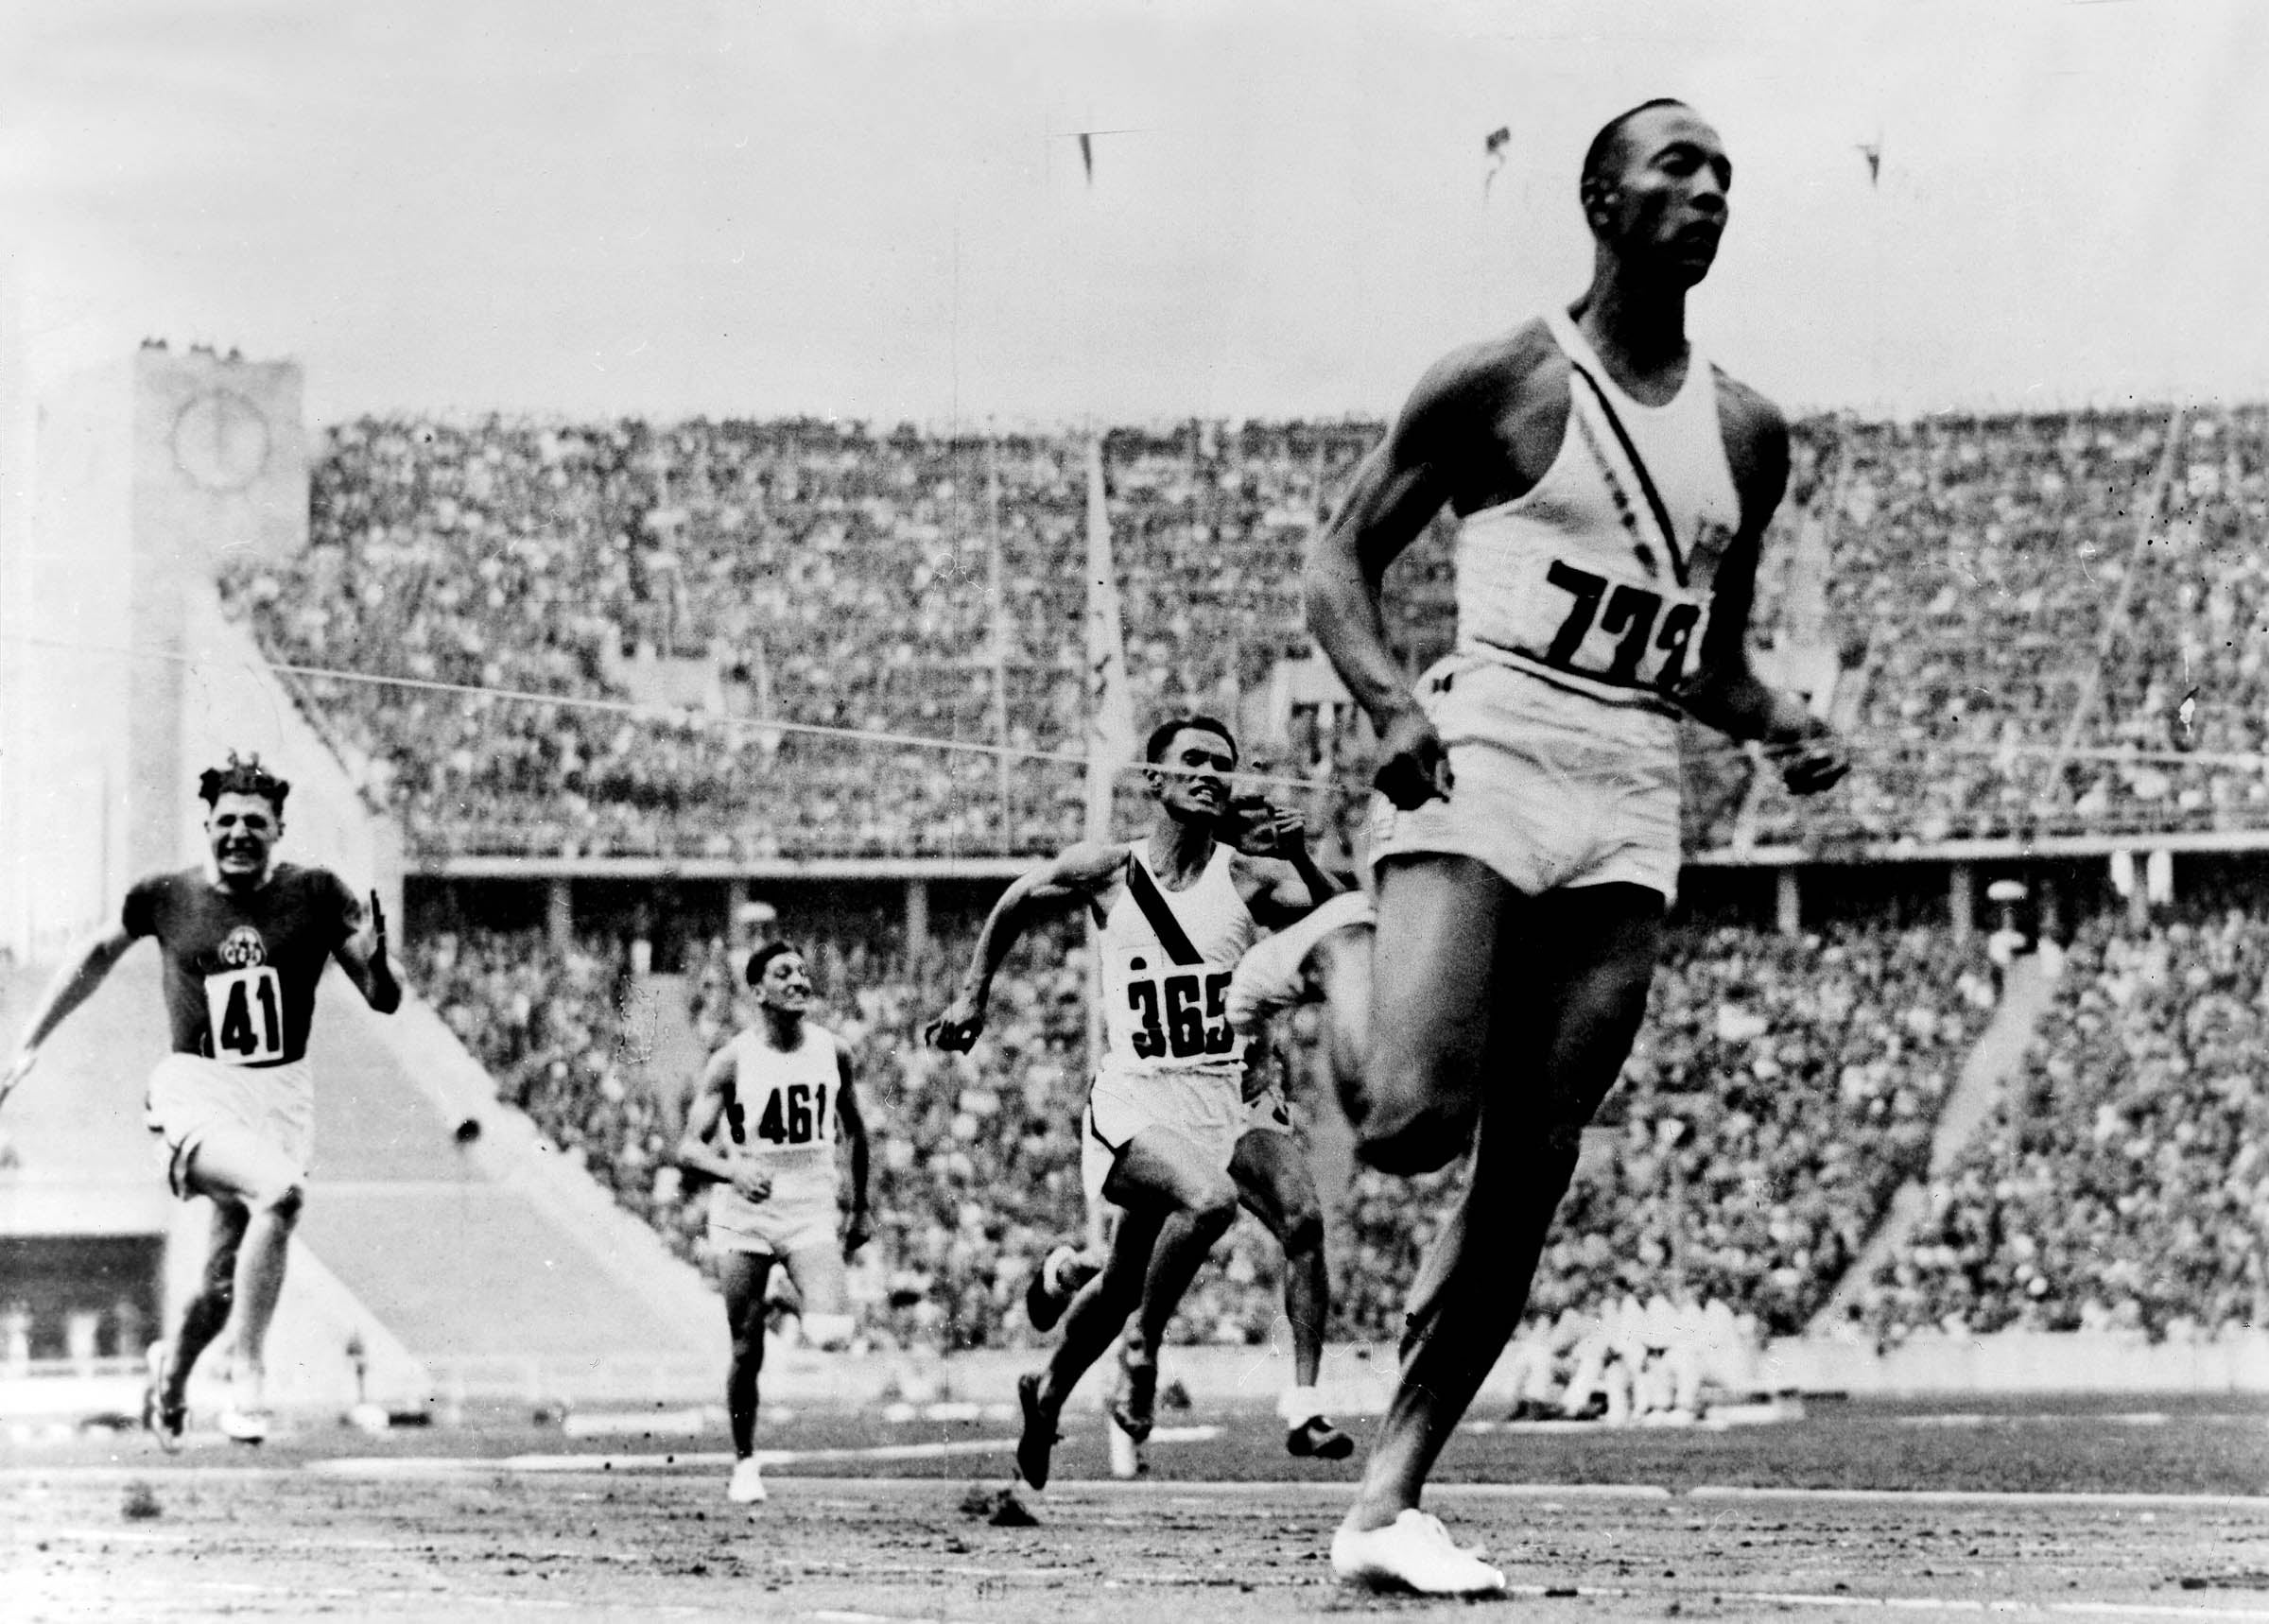 Jesse Owens at the 1936 Olympics